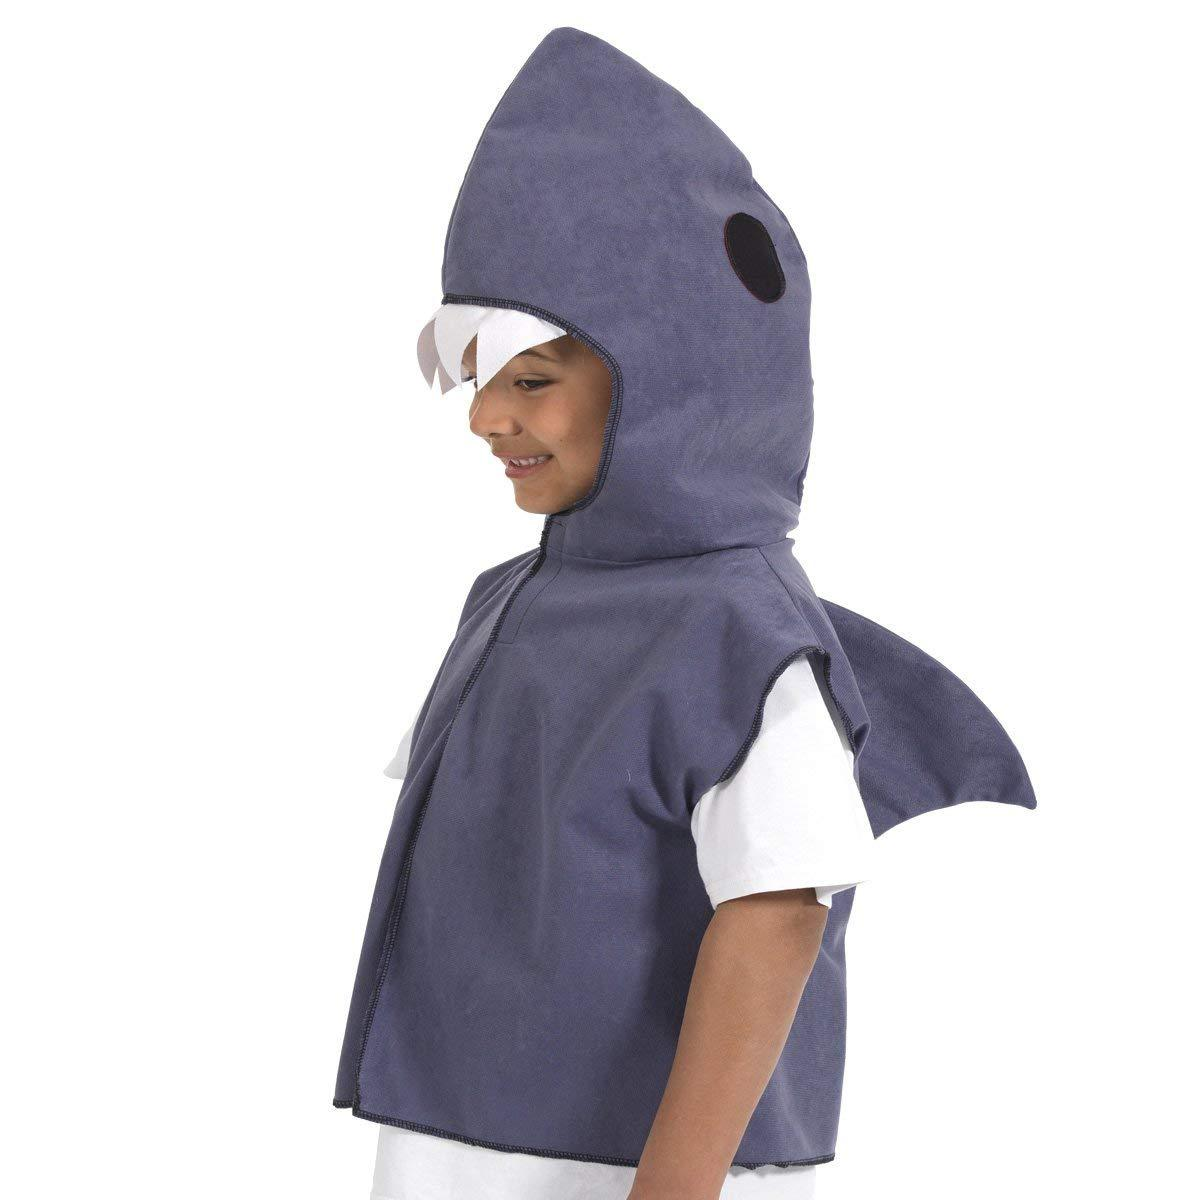 Halloween Purim ChristmasCostume For Kids Anima Cosplay  Boys Girls Shark Costume Children Acting Dress For Theme Party Carnaval